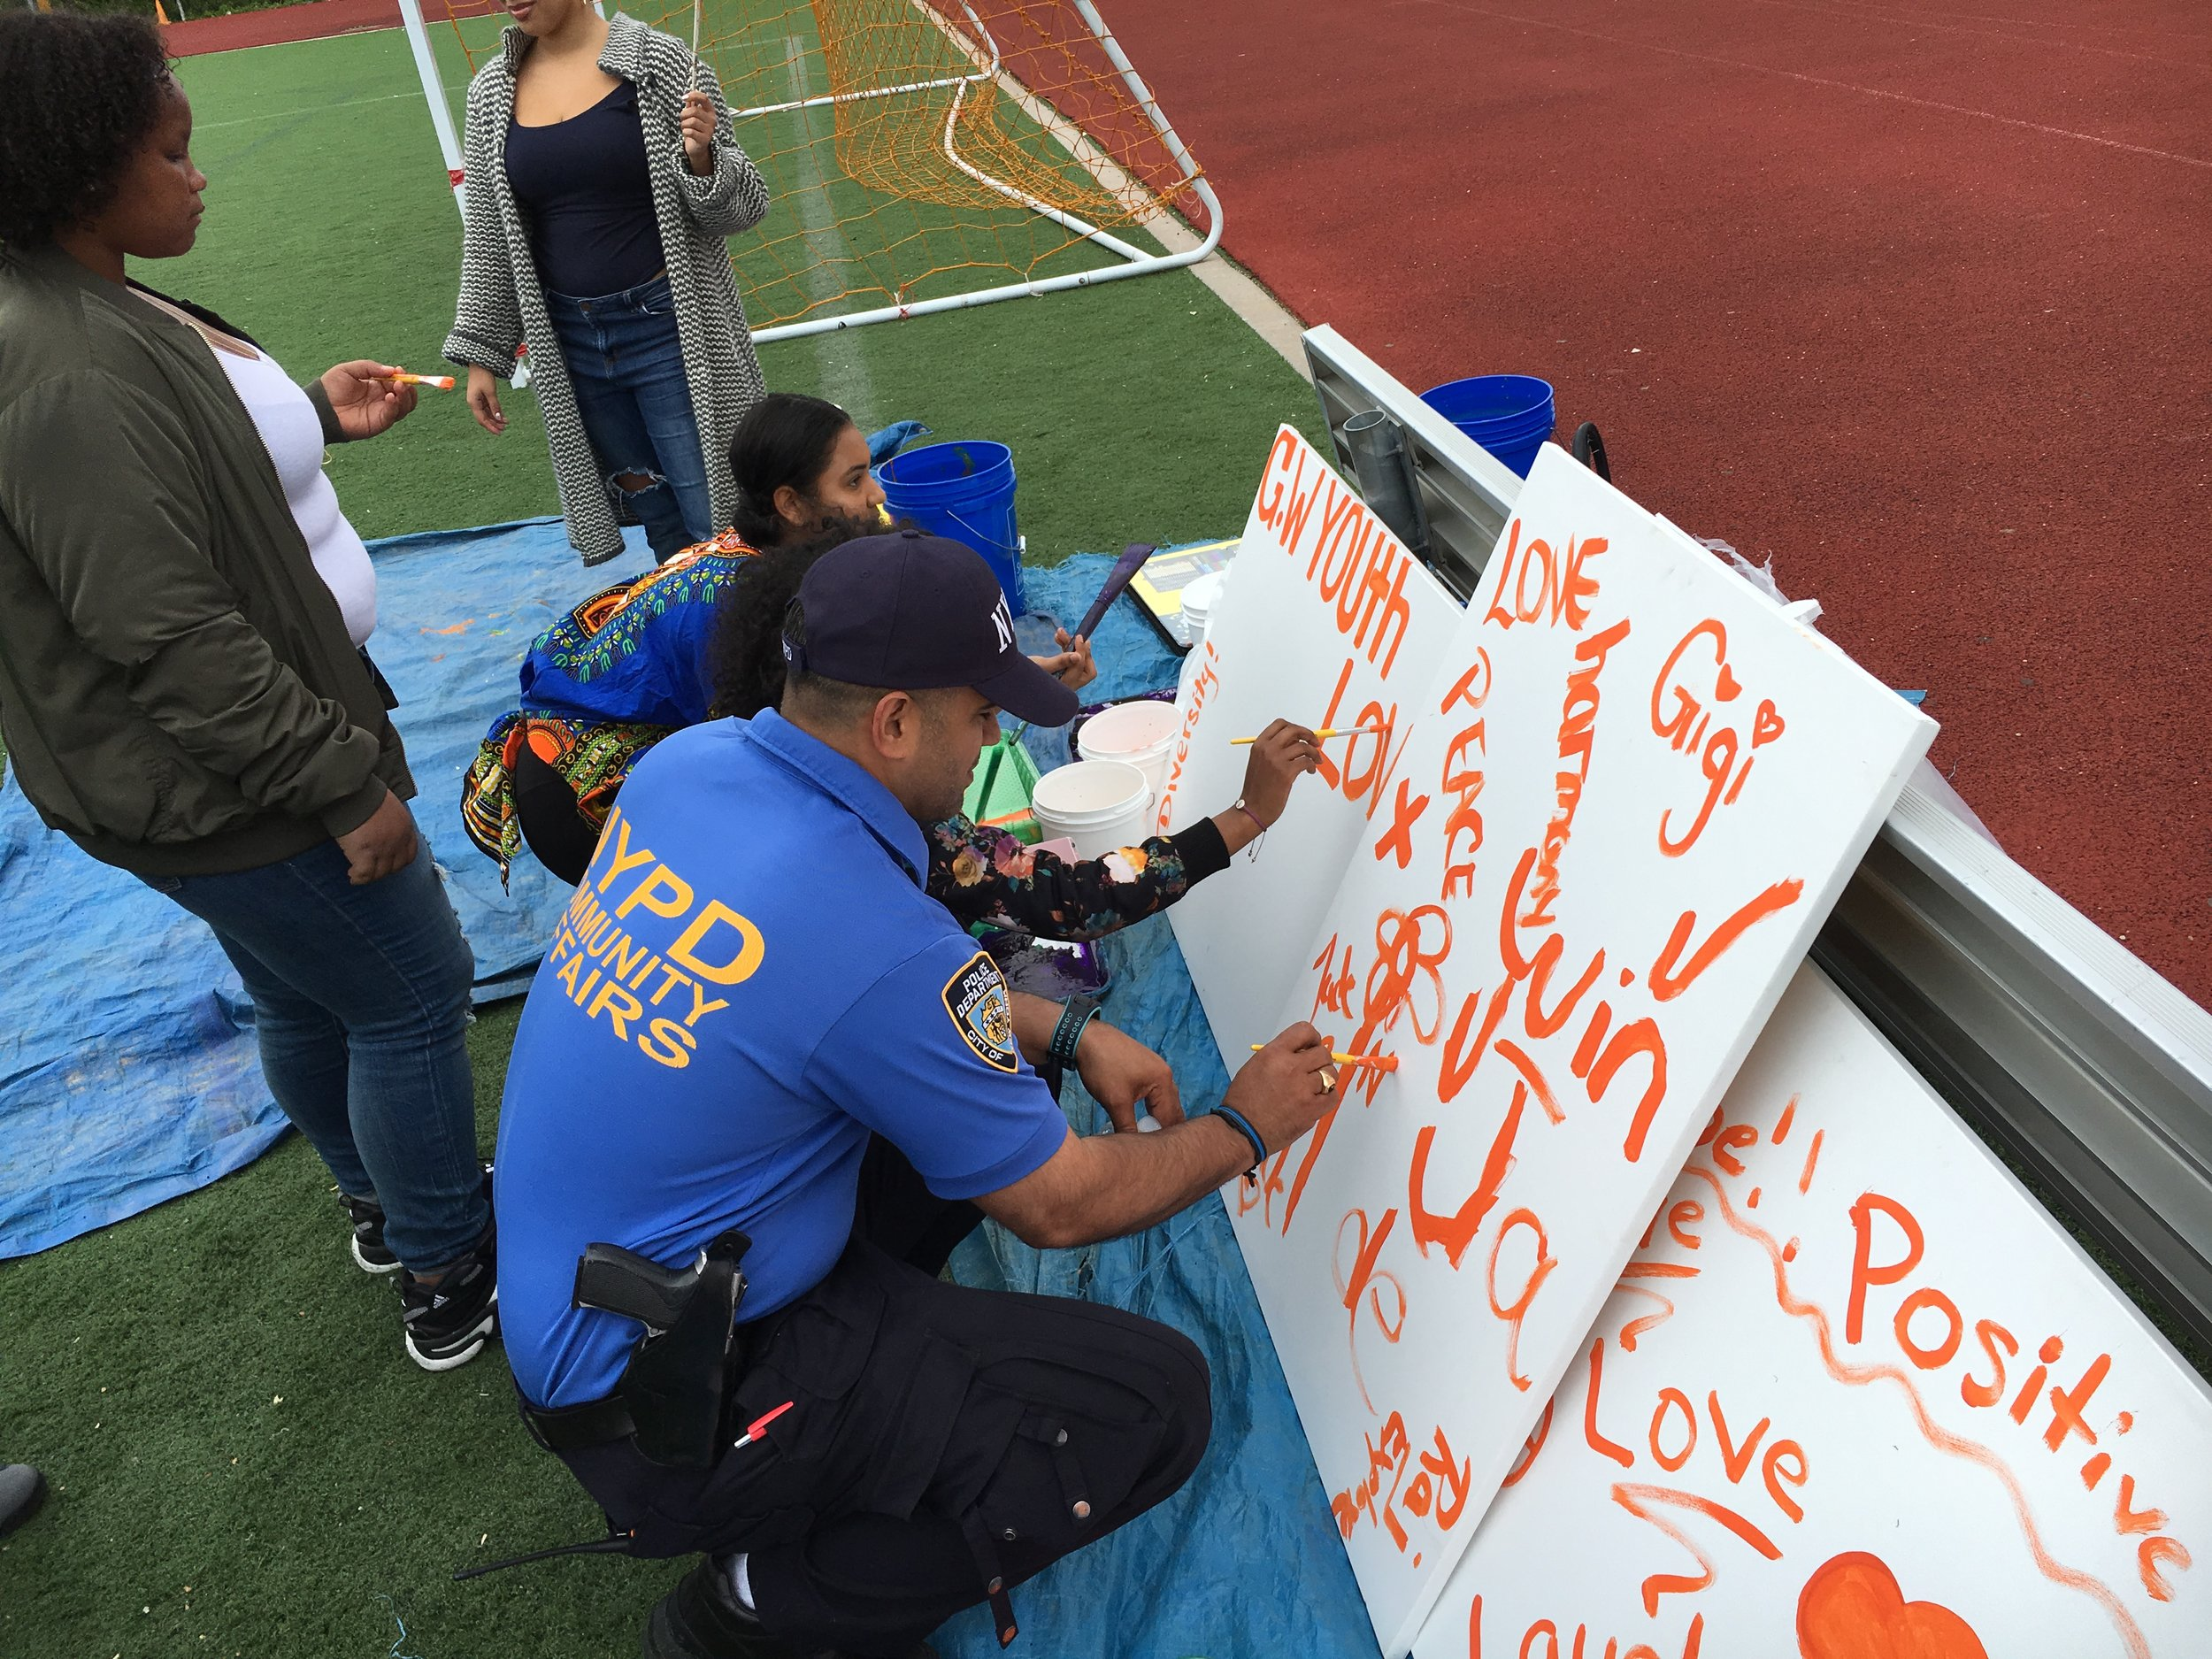 Artist Jamilex Tavares oversees as NYPD, Community members and Youth paint together.